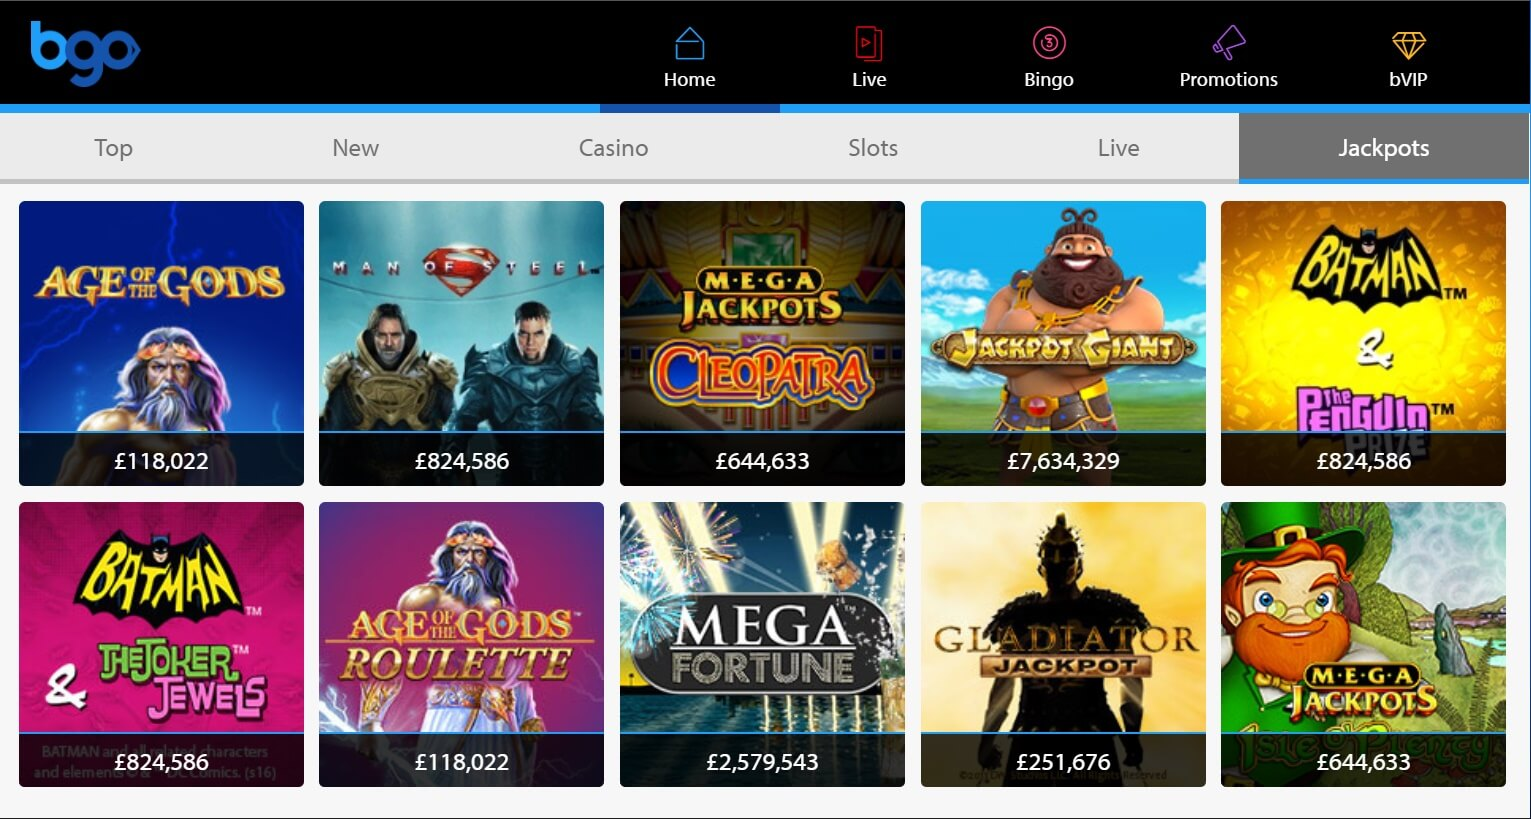 bgo casino new